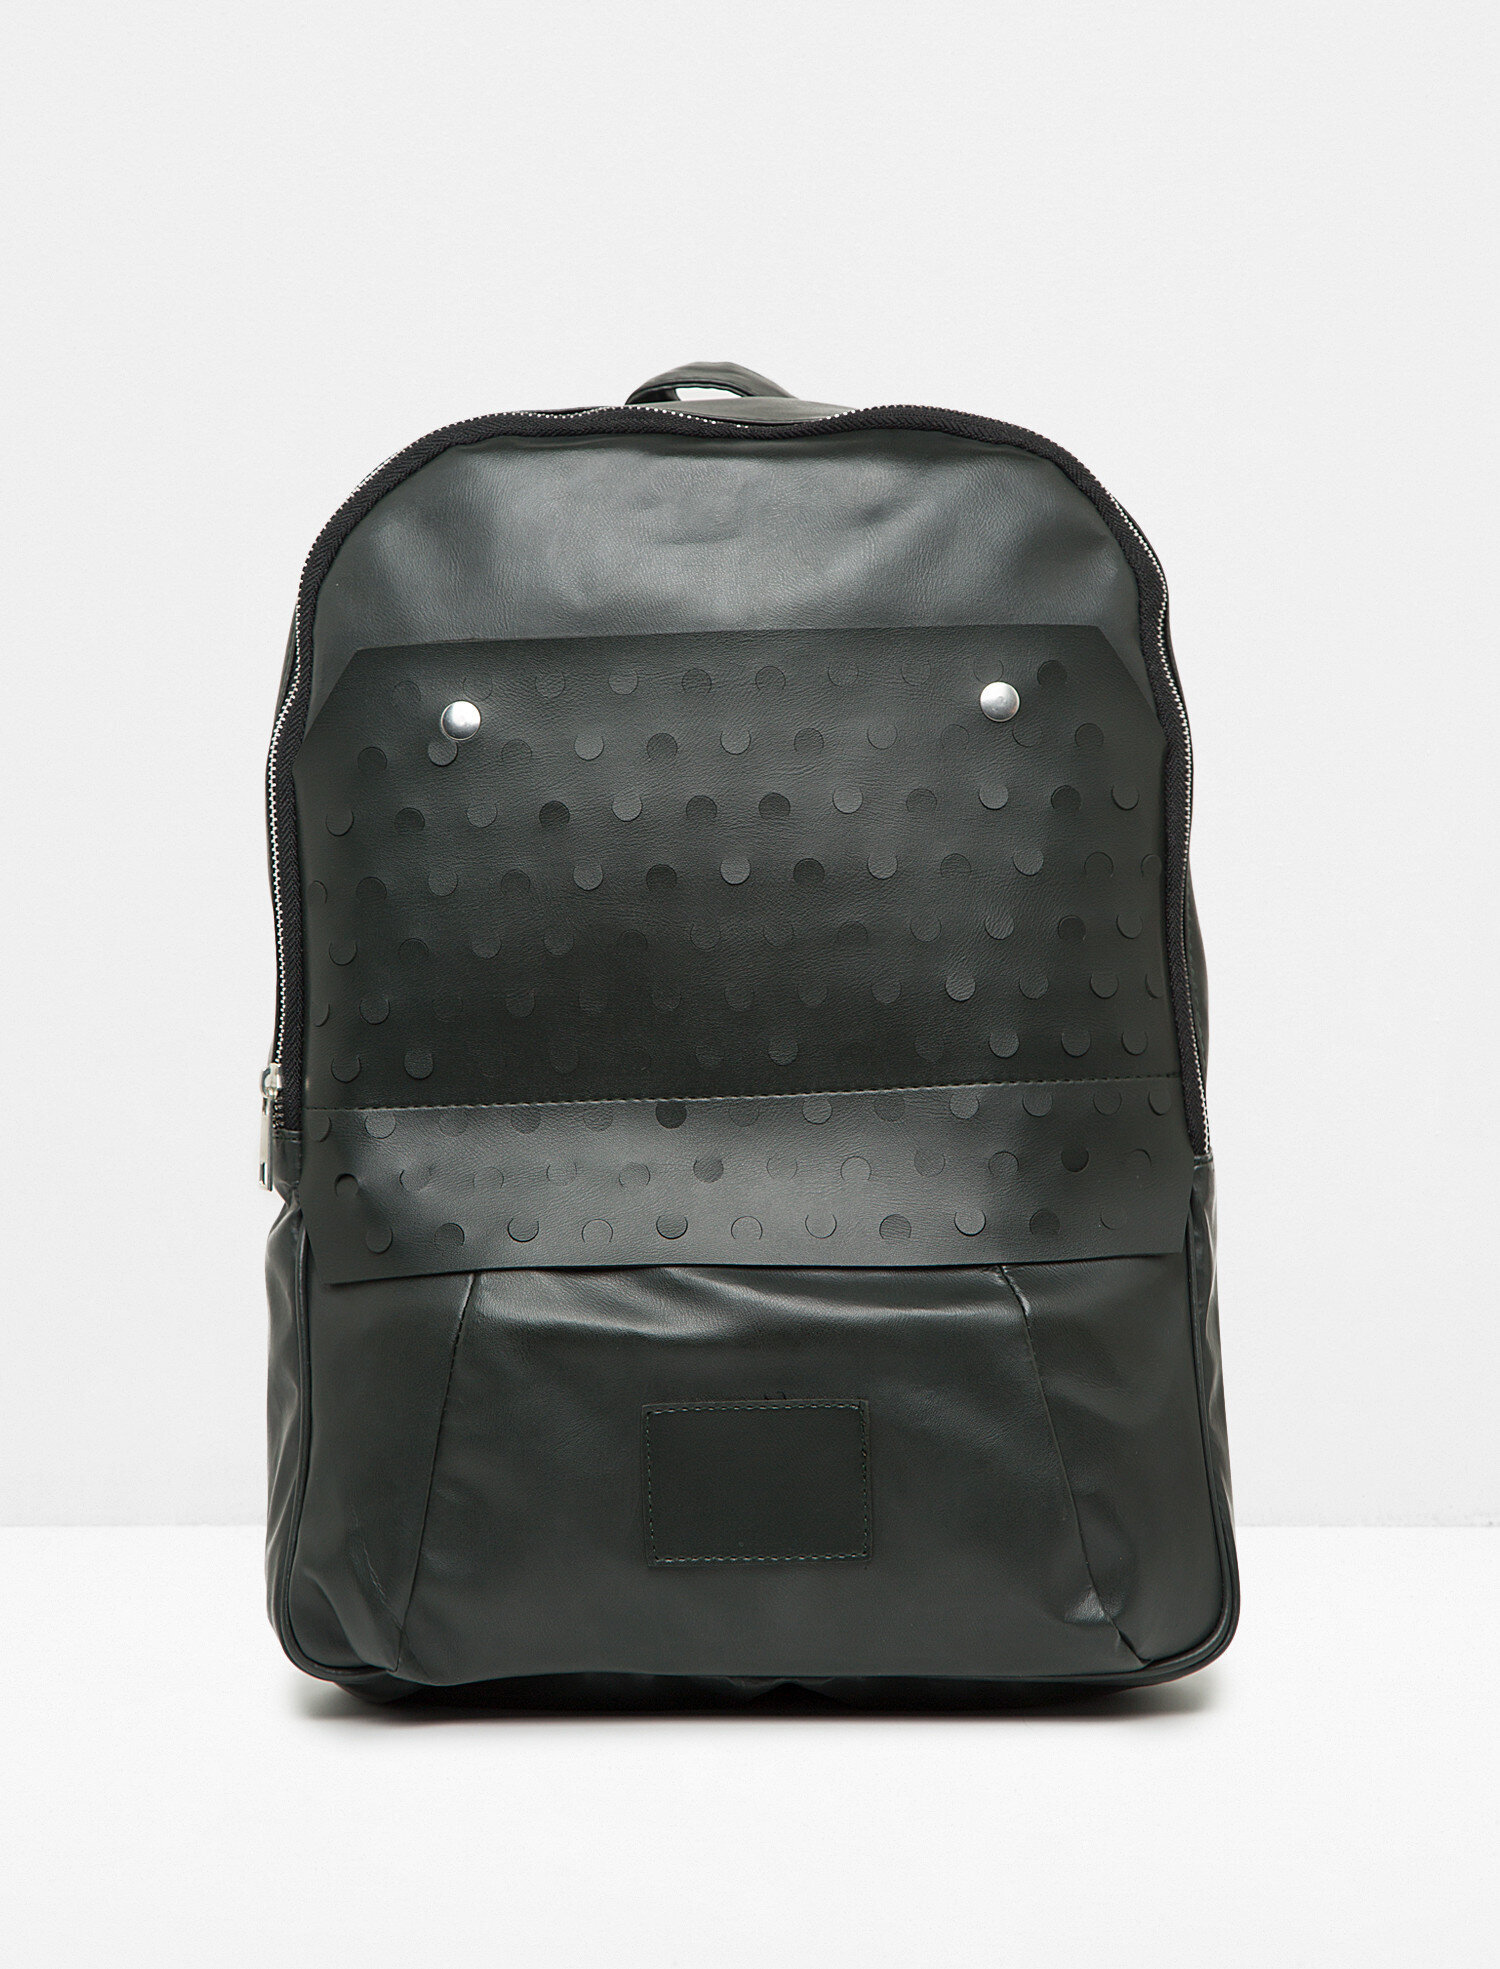 598717086 Black Men Leather Look Backpack 7YAM30152AA999T | Koton